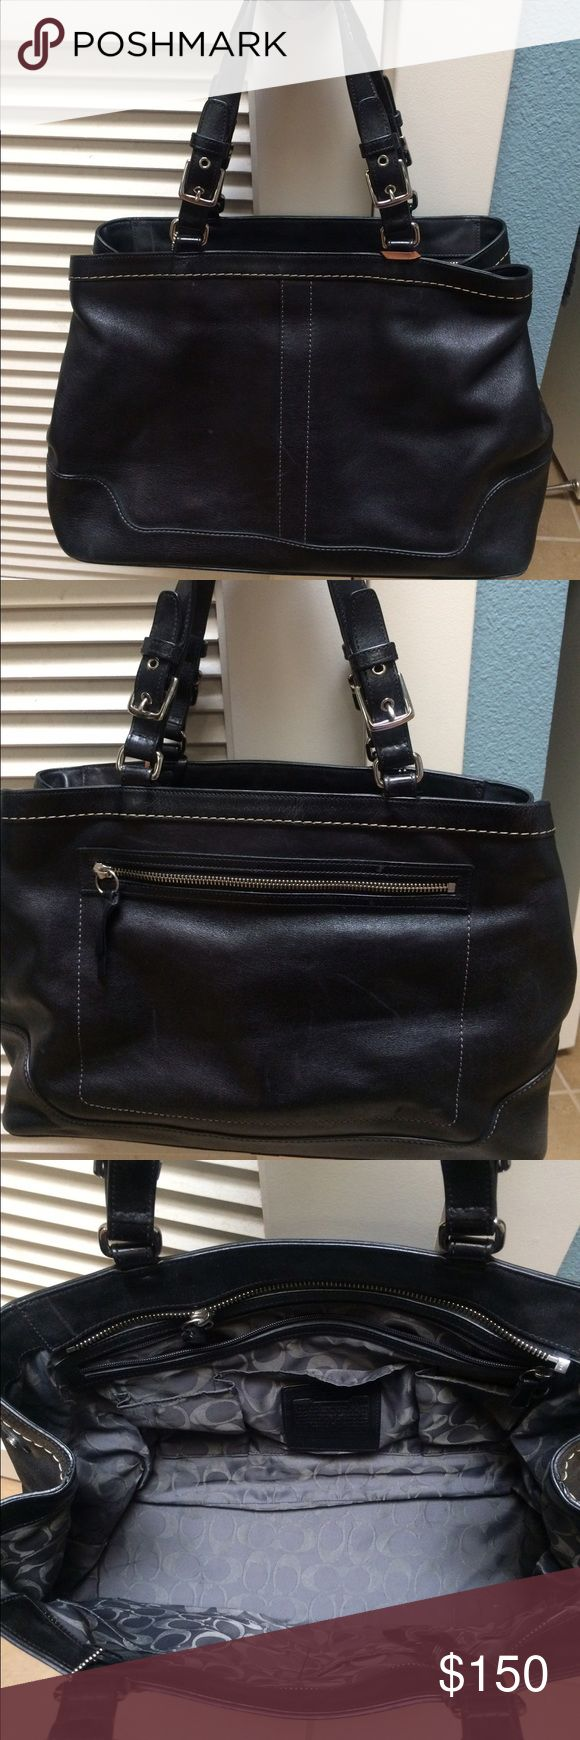 a7d3d01b013a ... real coach travel bag coach travel or work bag very spacious with  multiple pockets. d32ee